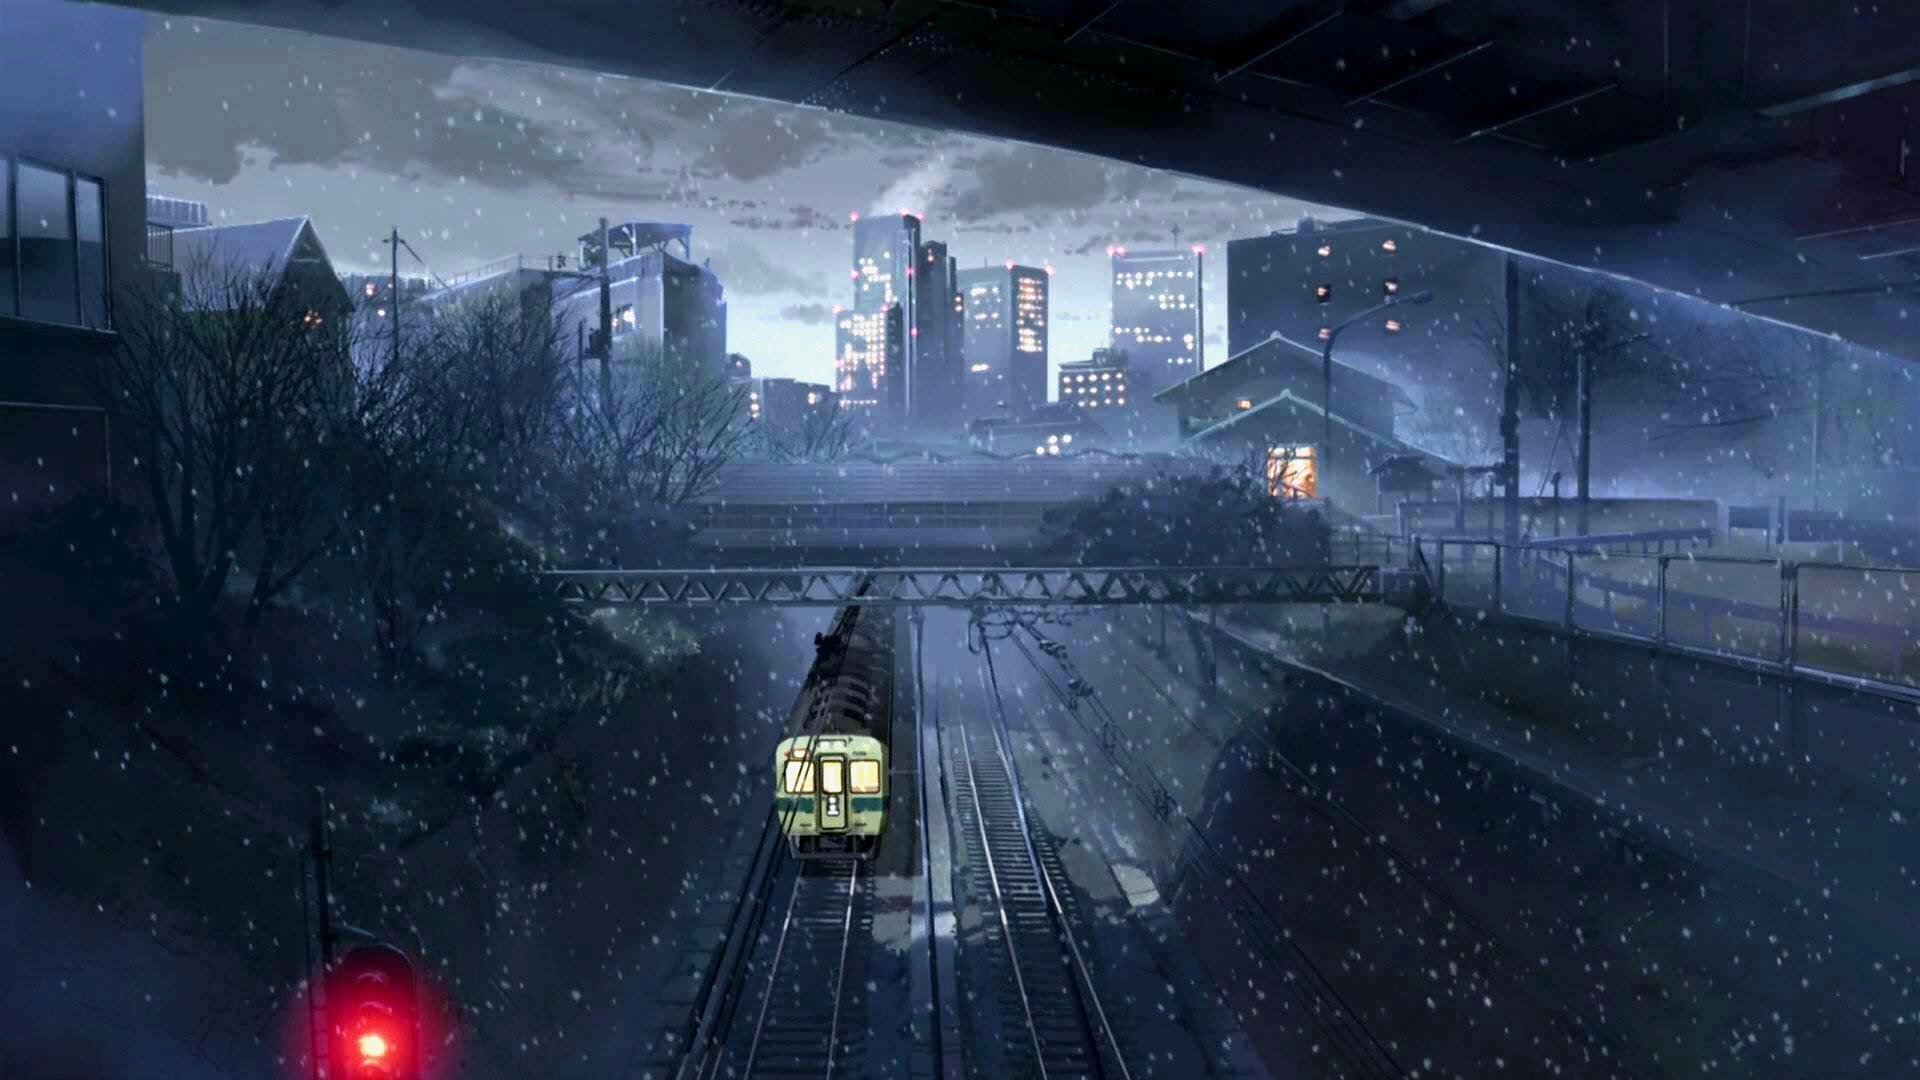 Centimeters Per Second Wallpaper Group